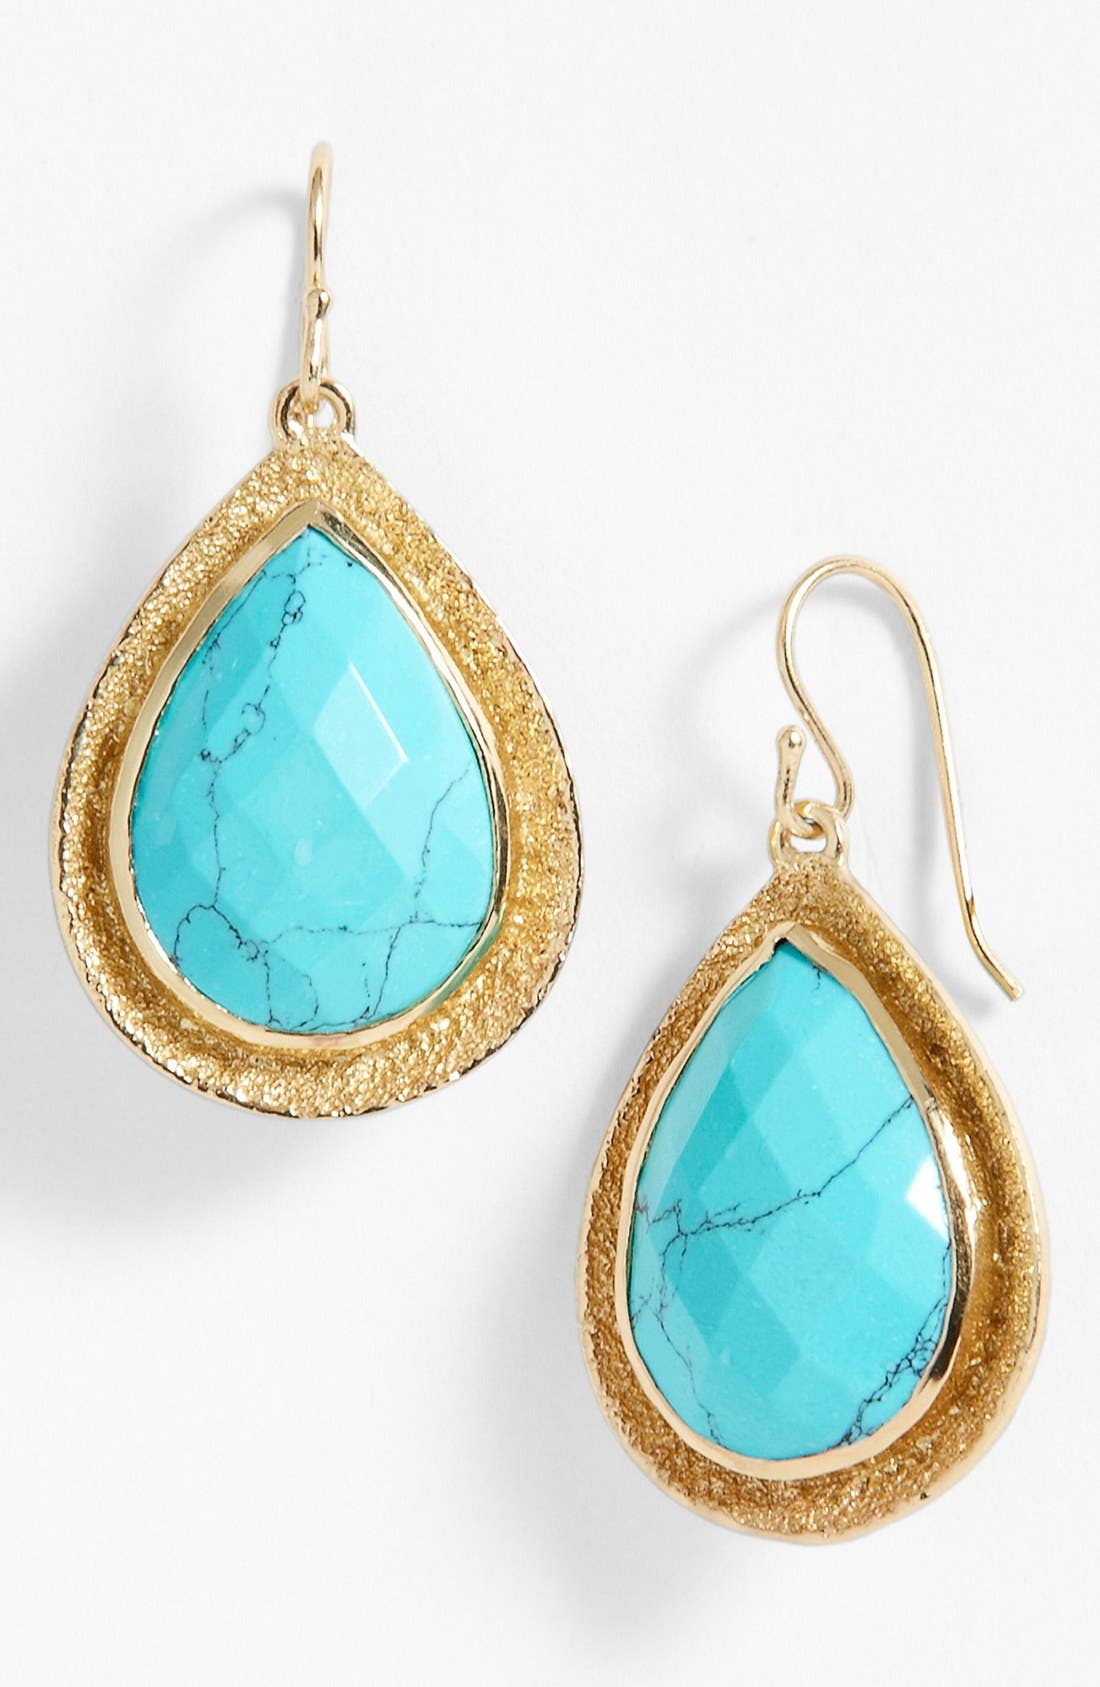 Main Image - Melinda Maria 'Genevieve' Teardrop Earrings